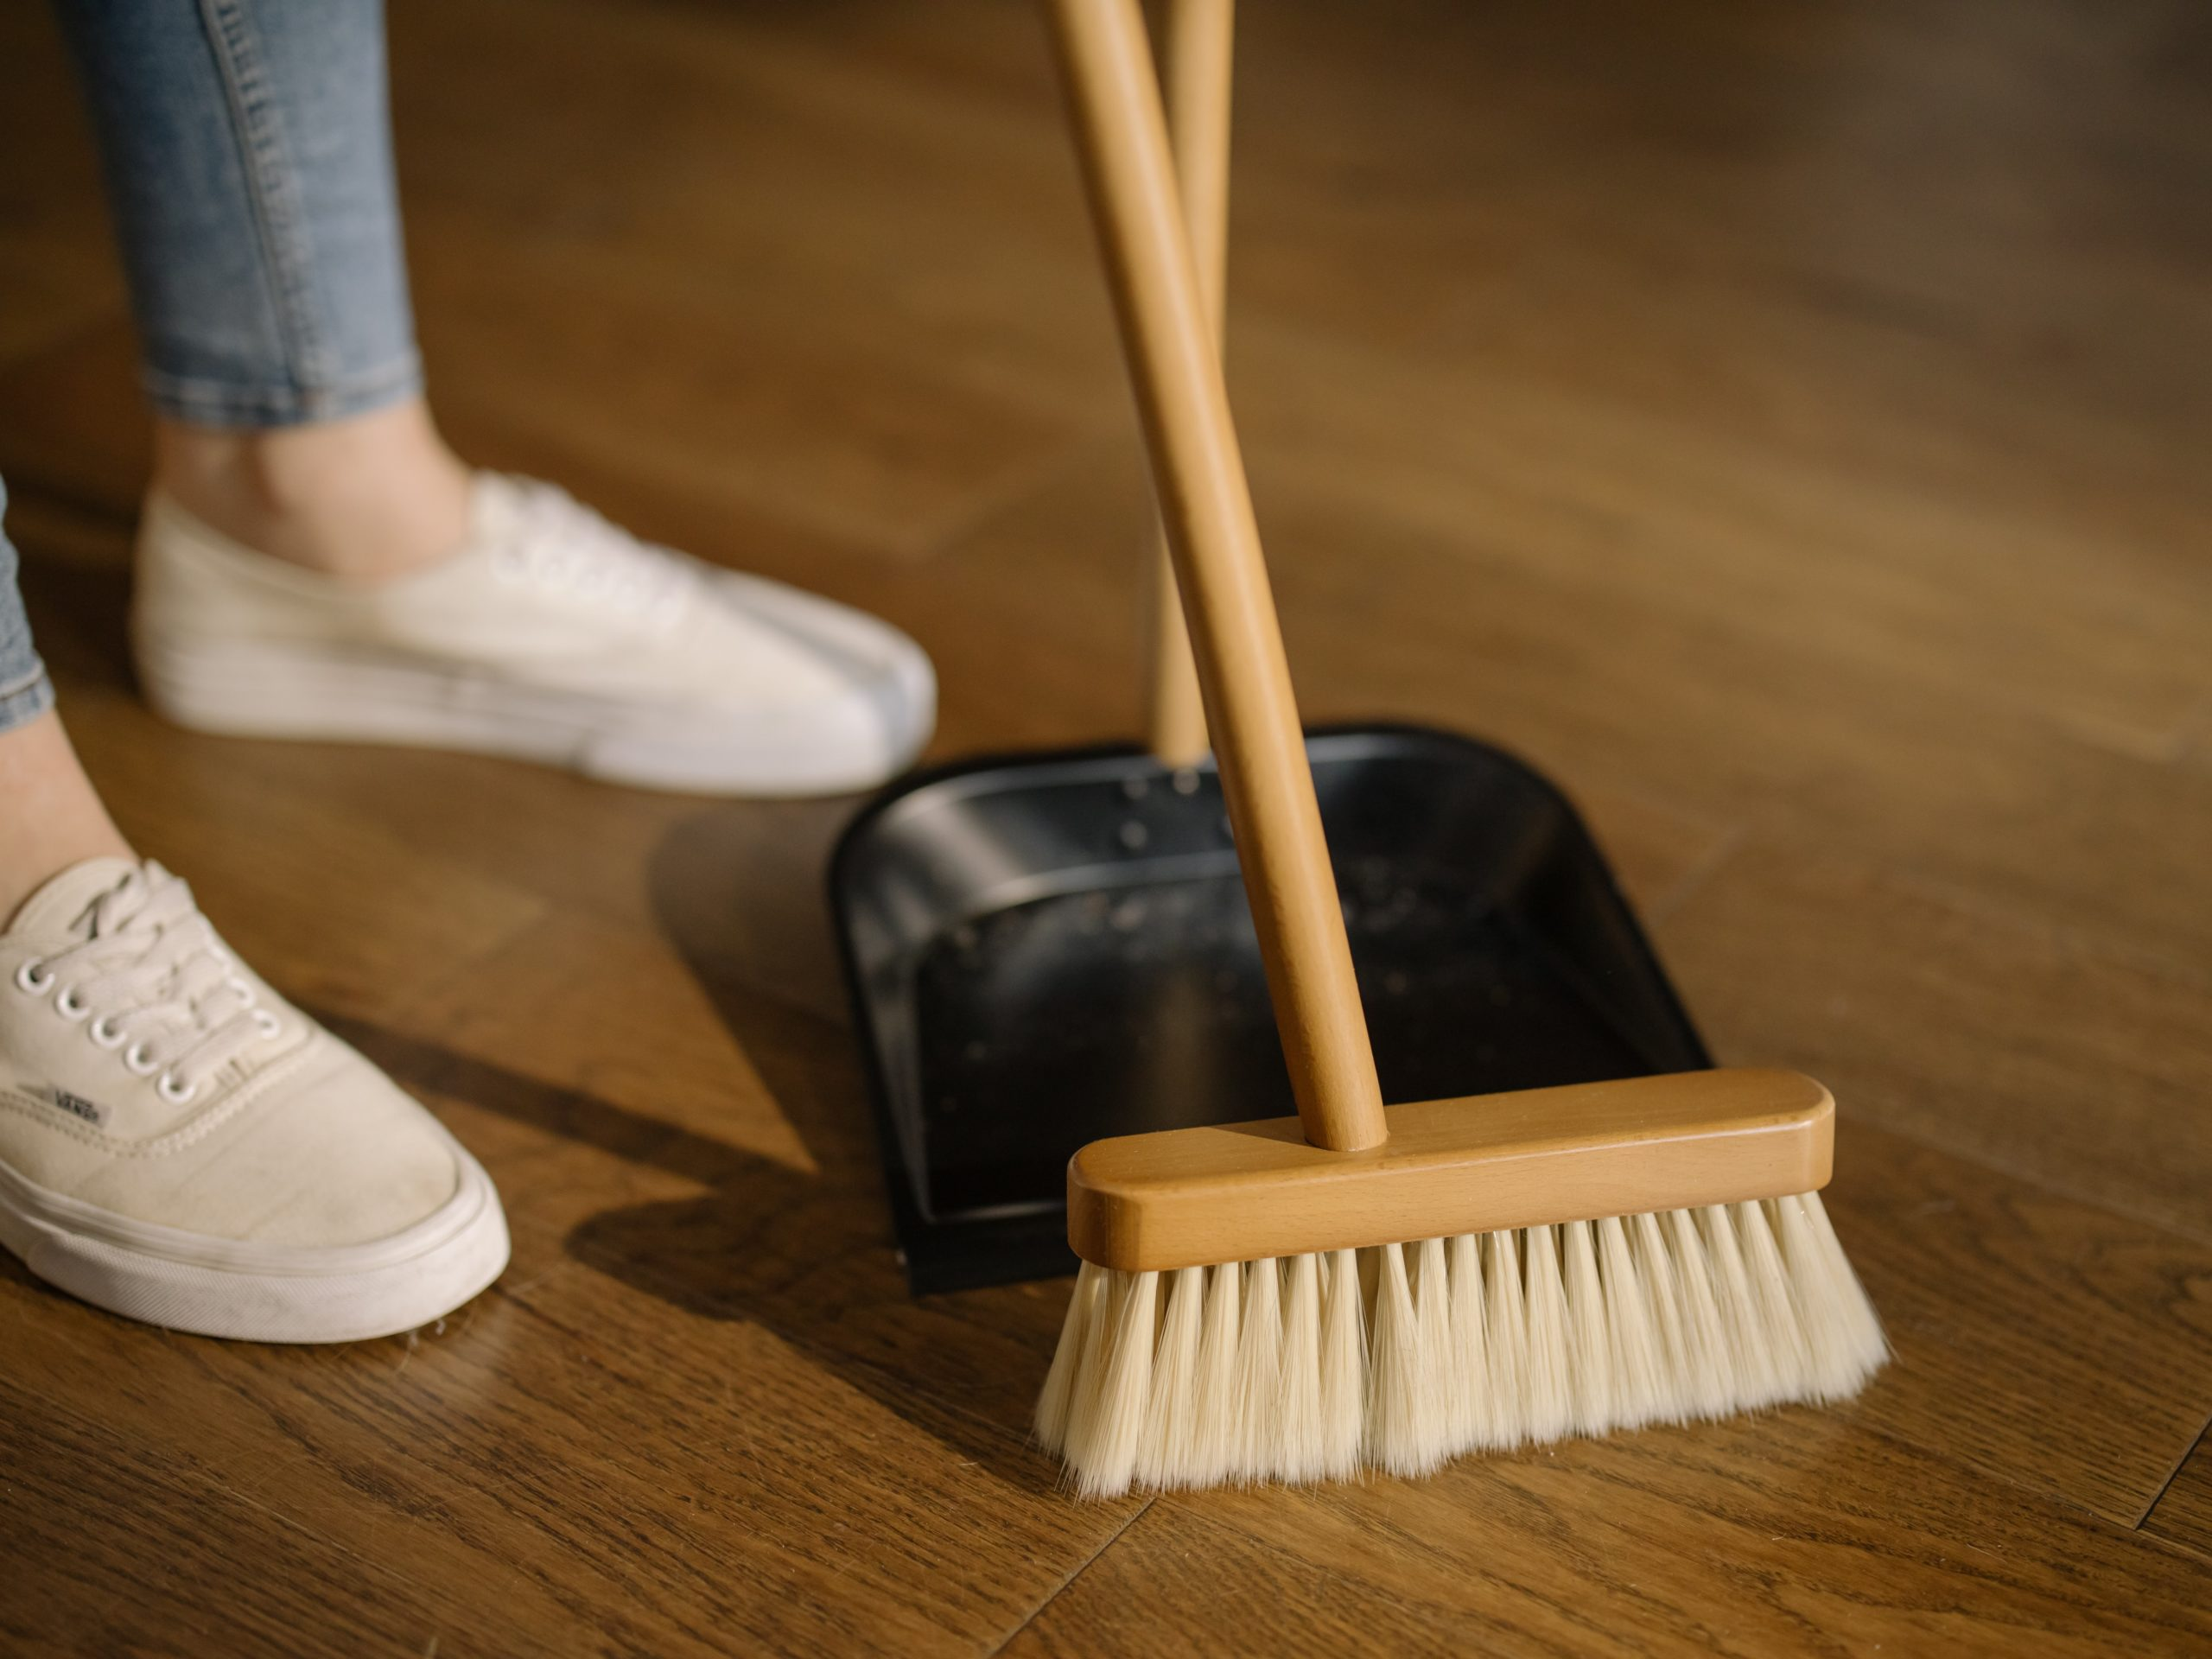 House Cleaning Hacks to Let Your Space Shine Forever